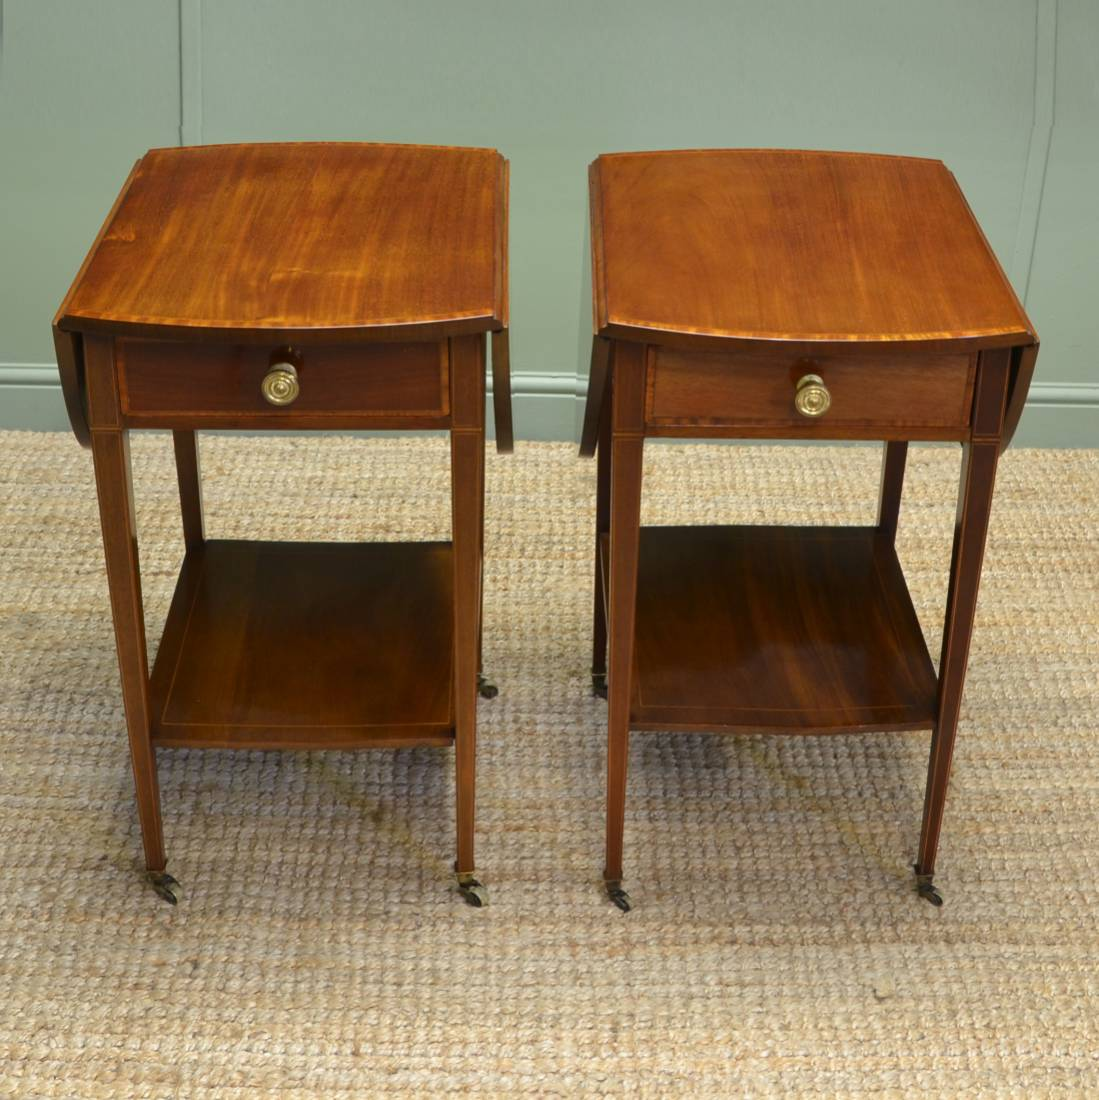 Occasional Tables: Unusual Pair Of Edwardian Inlaid Antique Walnut Sofa